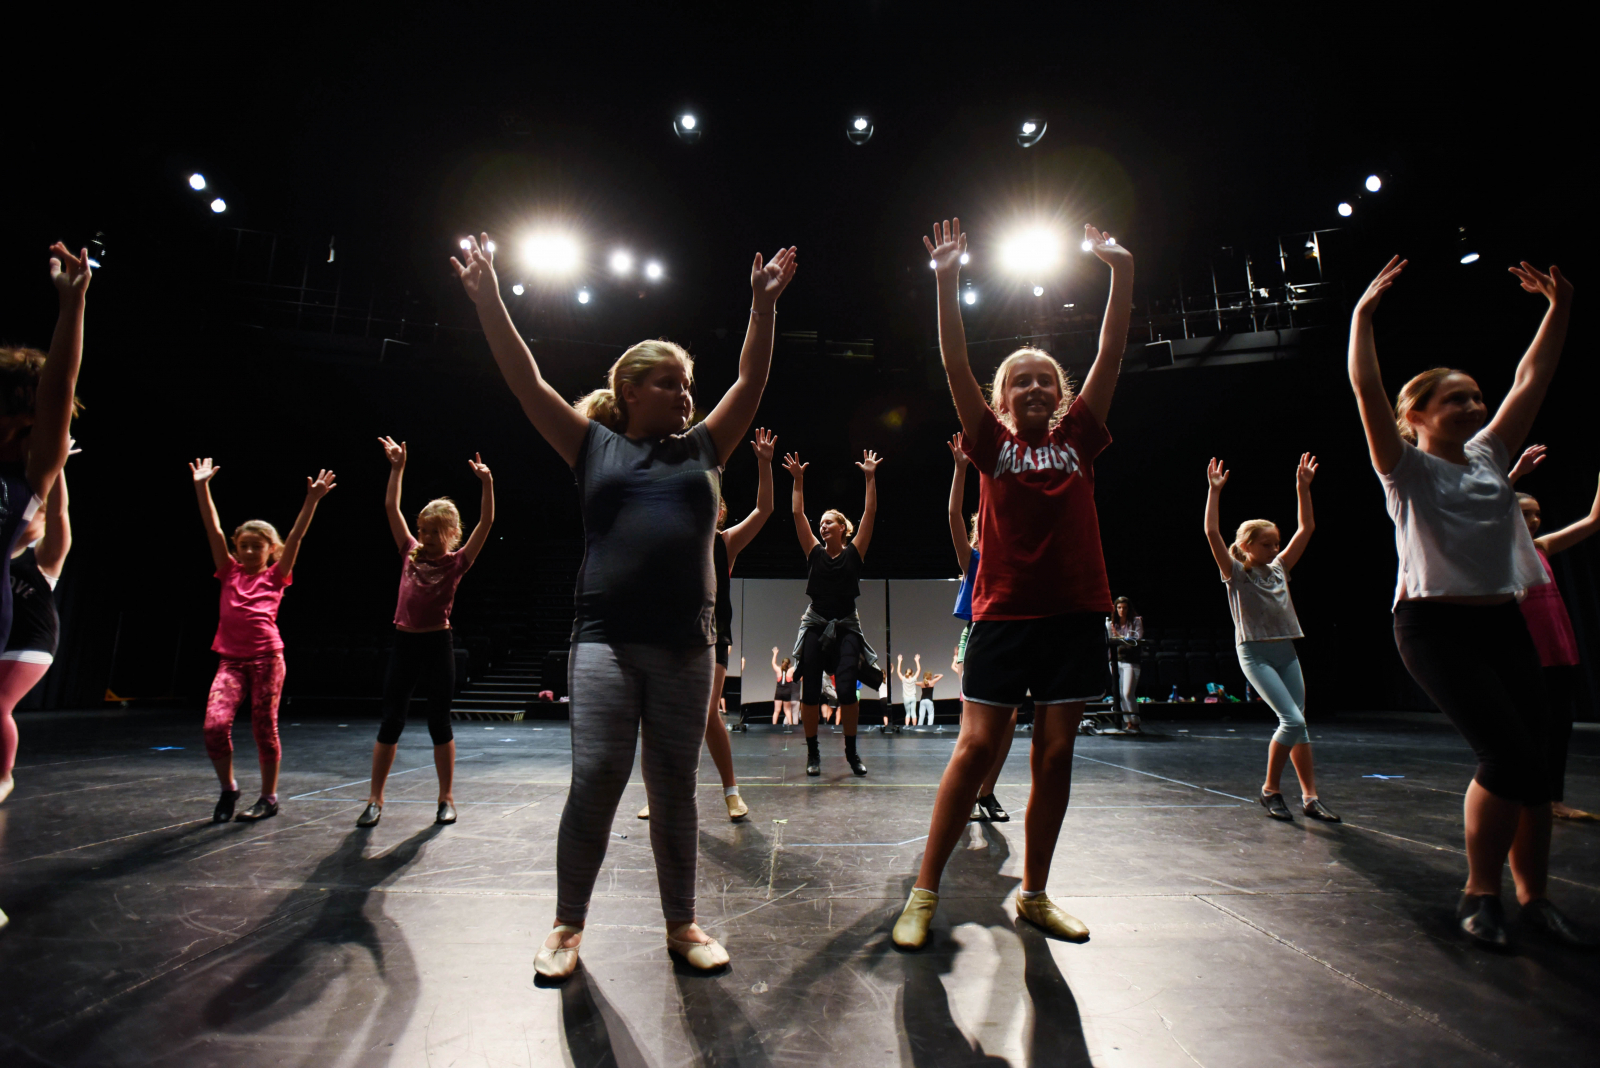 Students from the Broadway Dance Summer Education Program learn choreography in the GE Theatre at Proctors Tuesday, July 25, 2017.